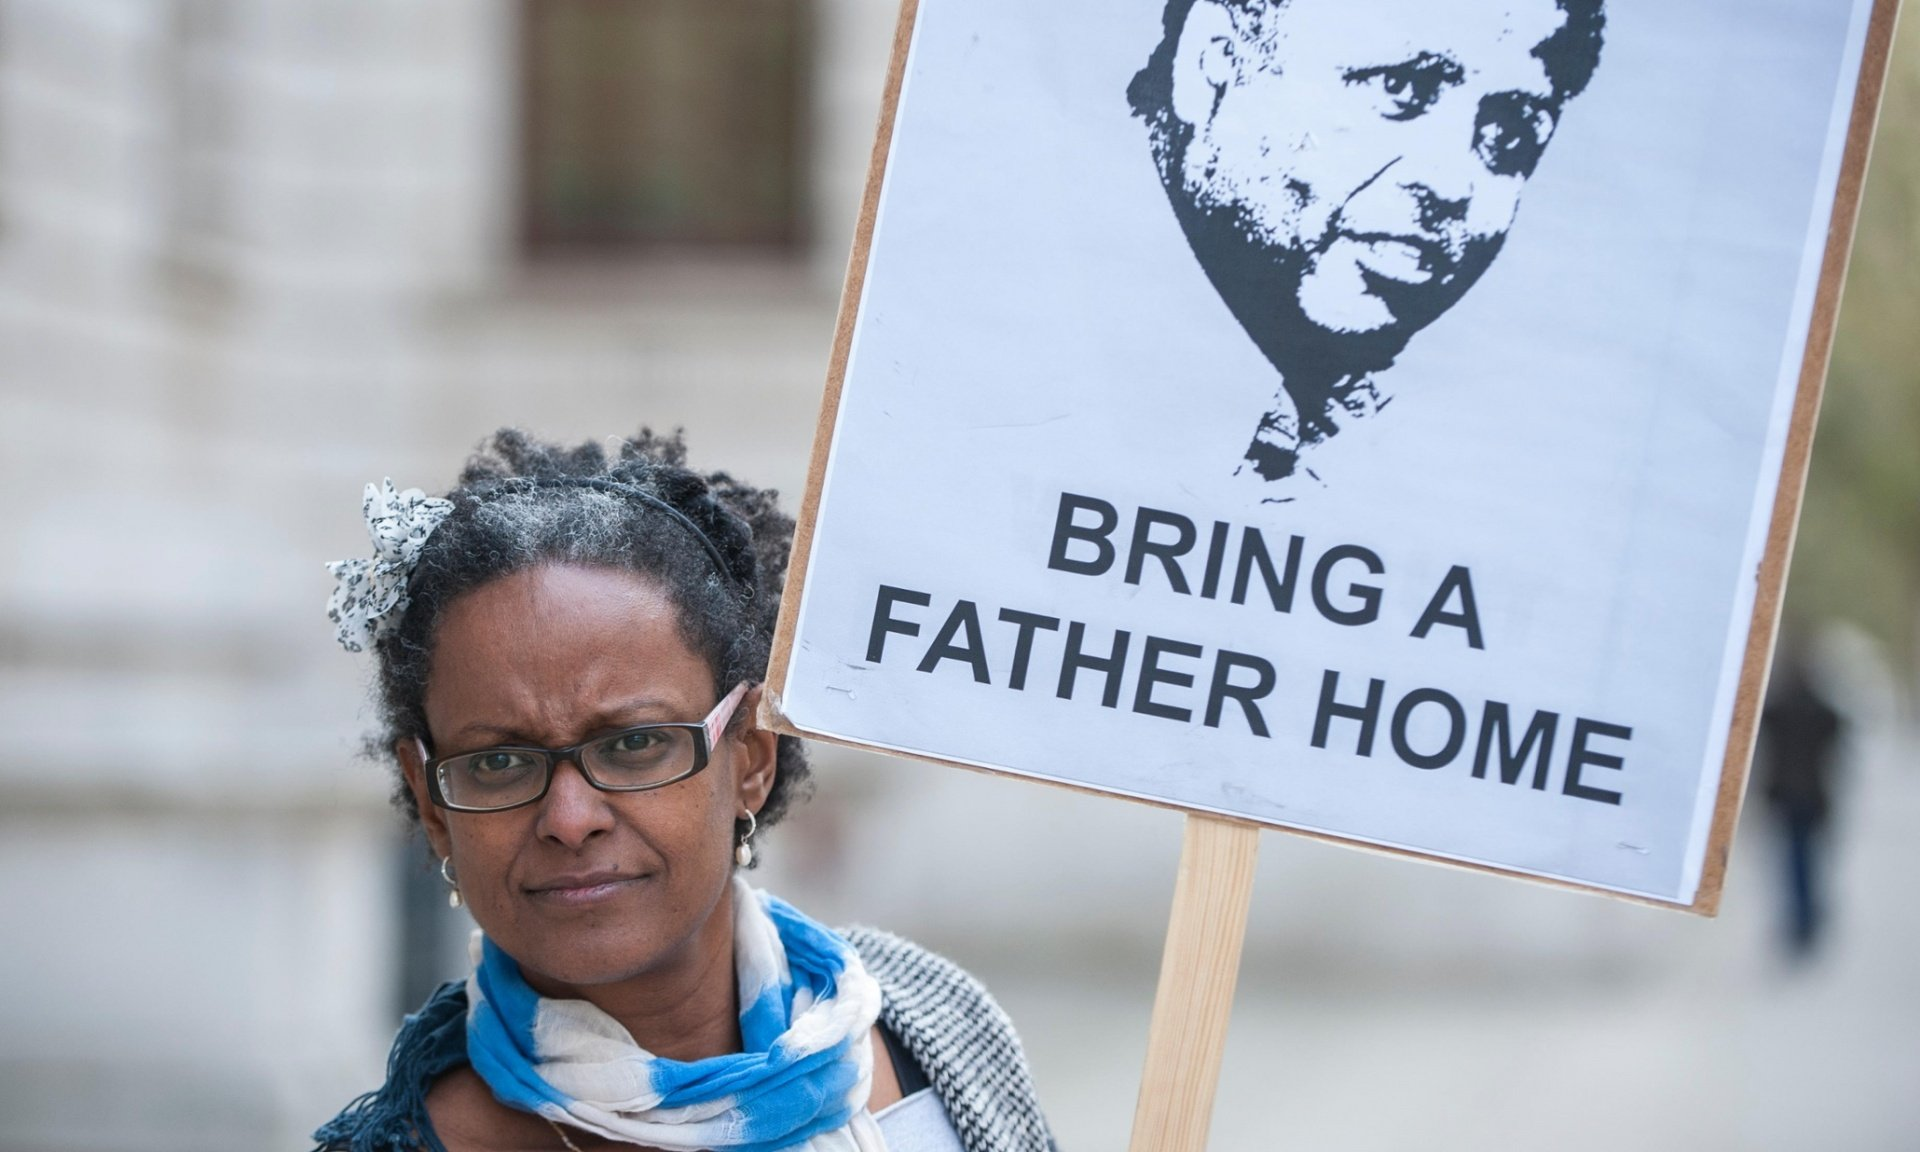 Yemi Hailemariam campaigns in London to demand the immediate release of her partner, British citizen Andargachew Tsege, who has been held in Ethiopia since June 2014. Photograph: Alamy